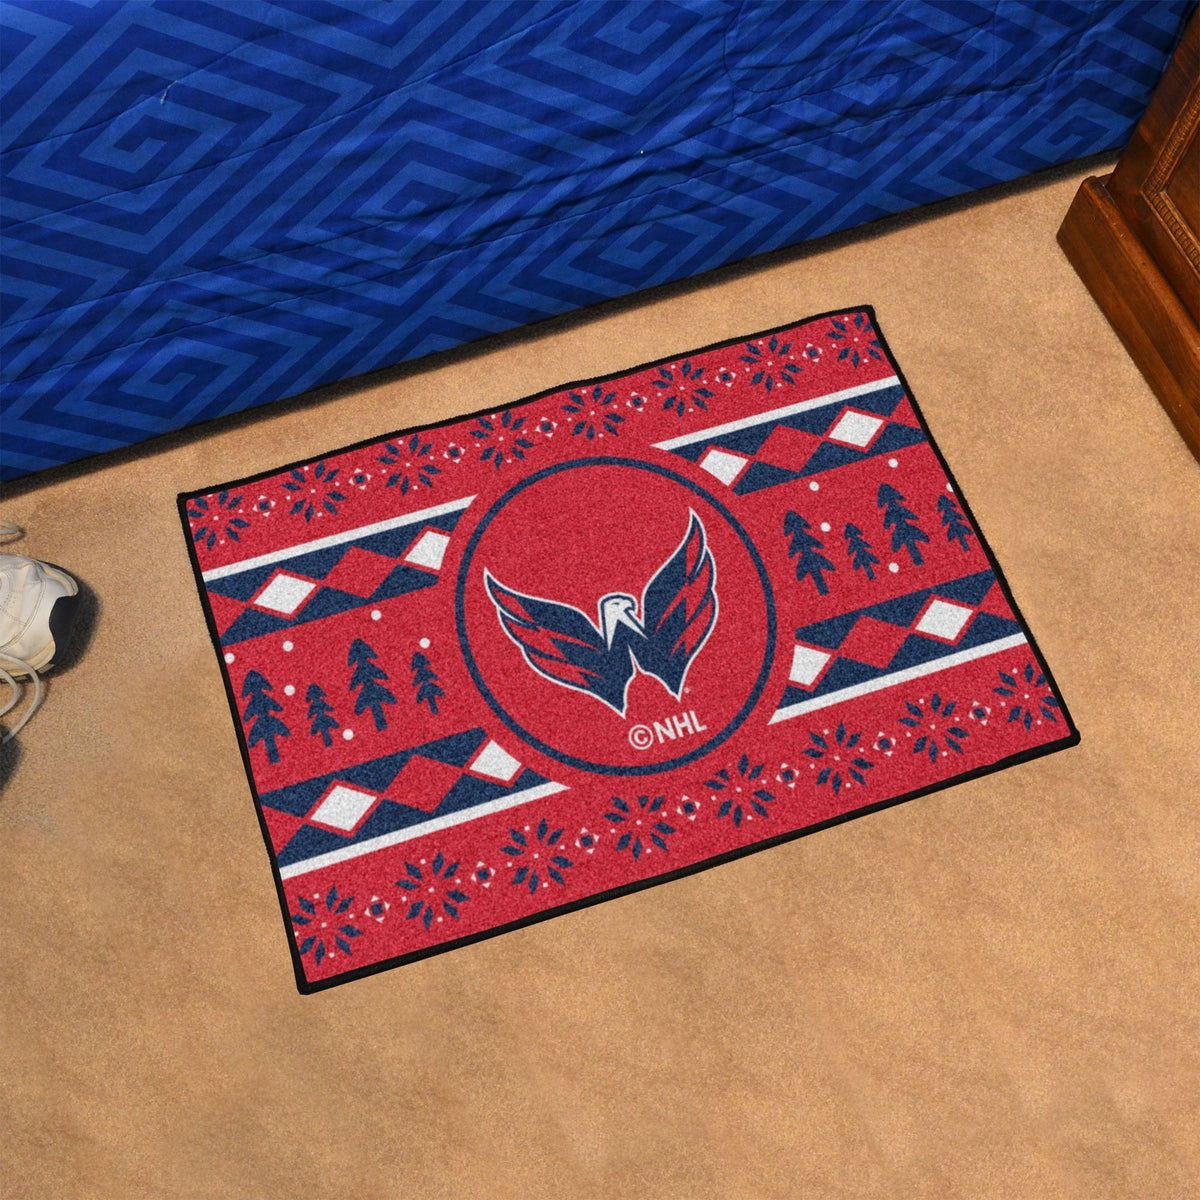 NHL - Holiday Sweater Starter Mat NHL Mats, Rectangular Mats, Holiday Sweater Starter Mat, NHL, Home Fan Mats Washington Capitals